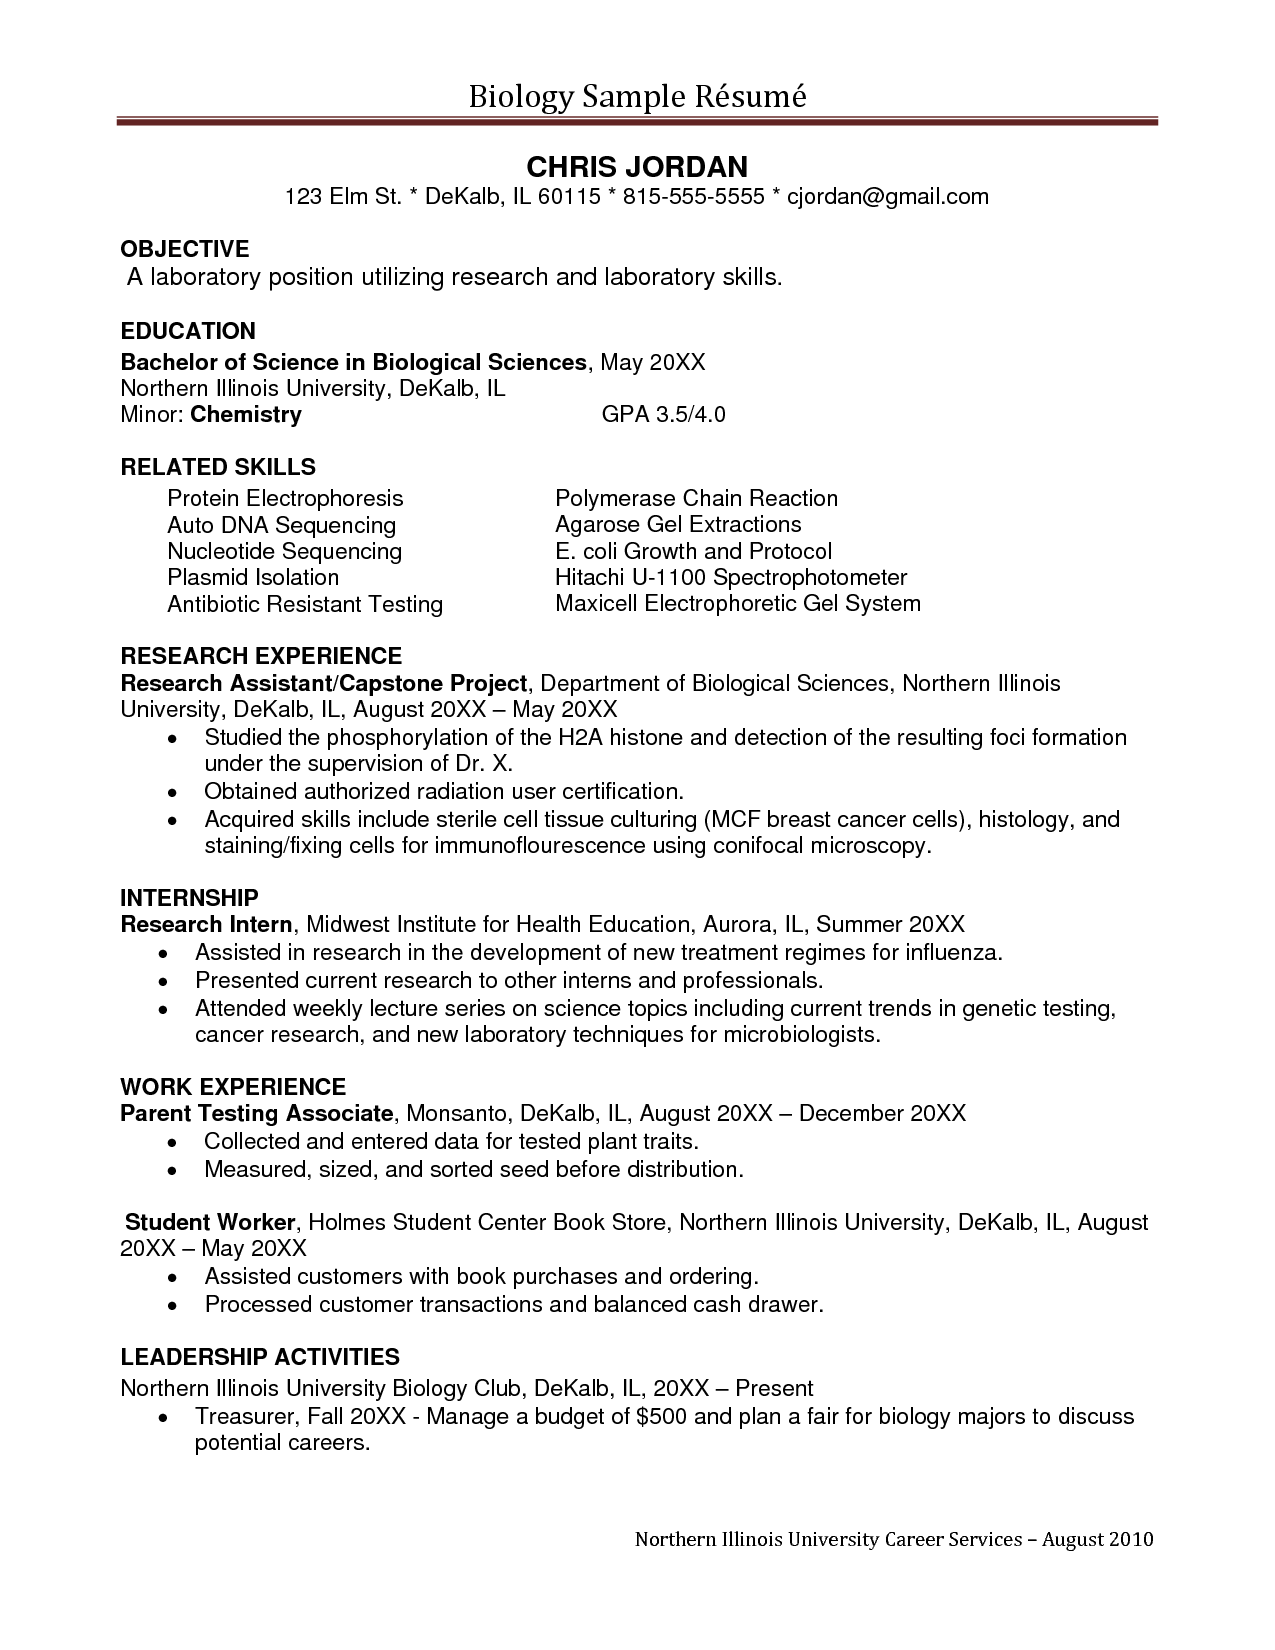 Sample, Undergraduate Research Assistant Resume Sample,ĺ Administrative  Assistant Resume Objective Examples, Medical  Medical Assistant Objective